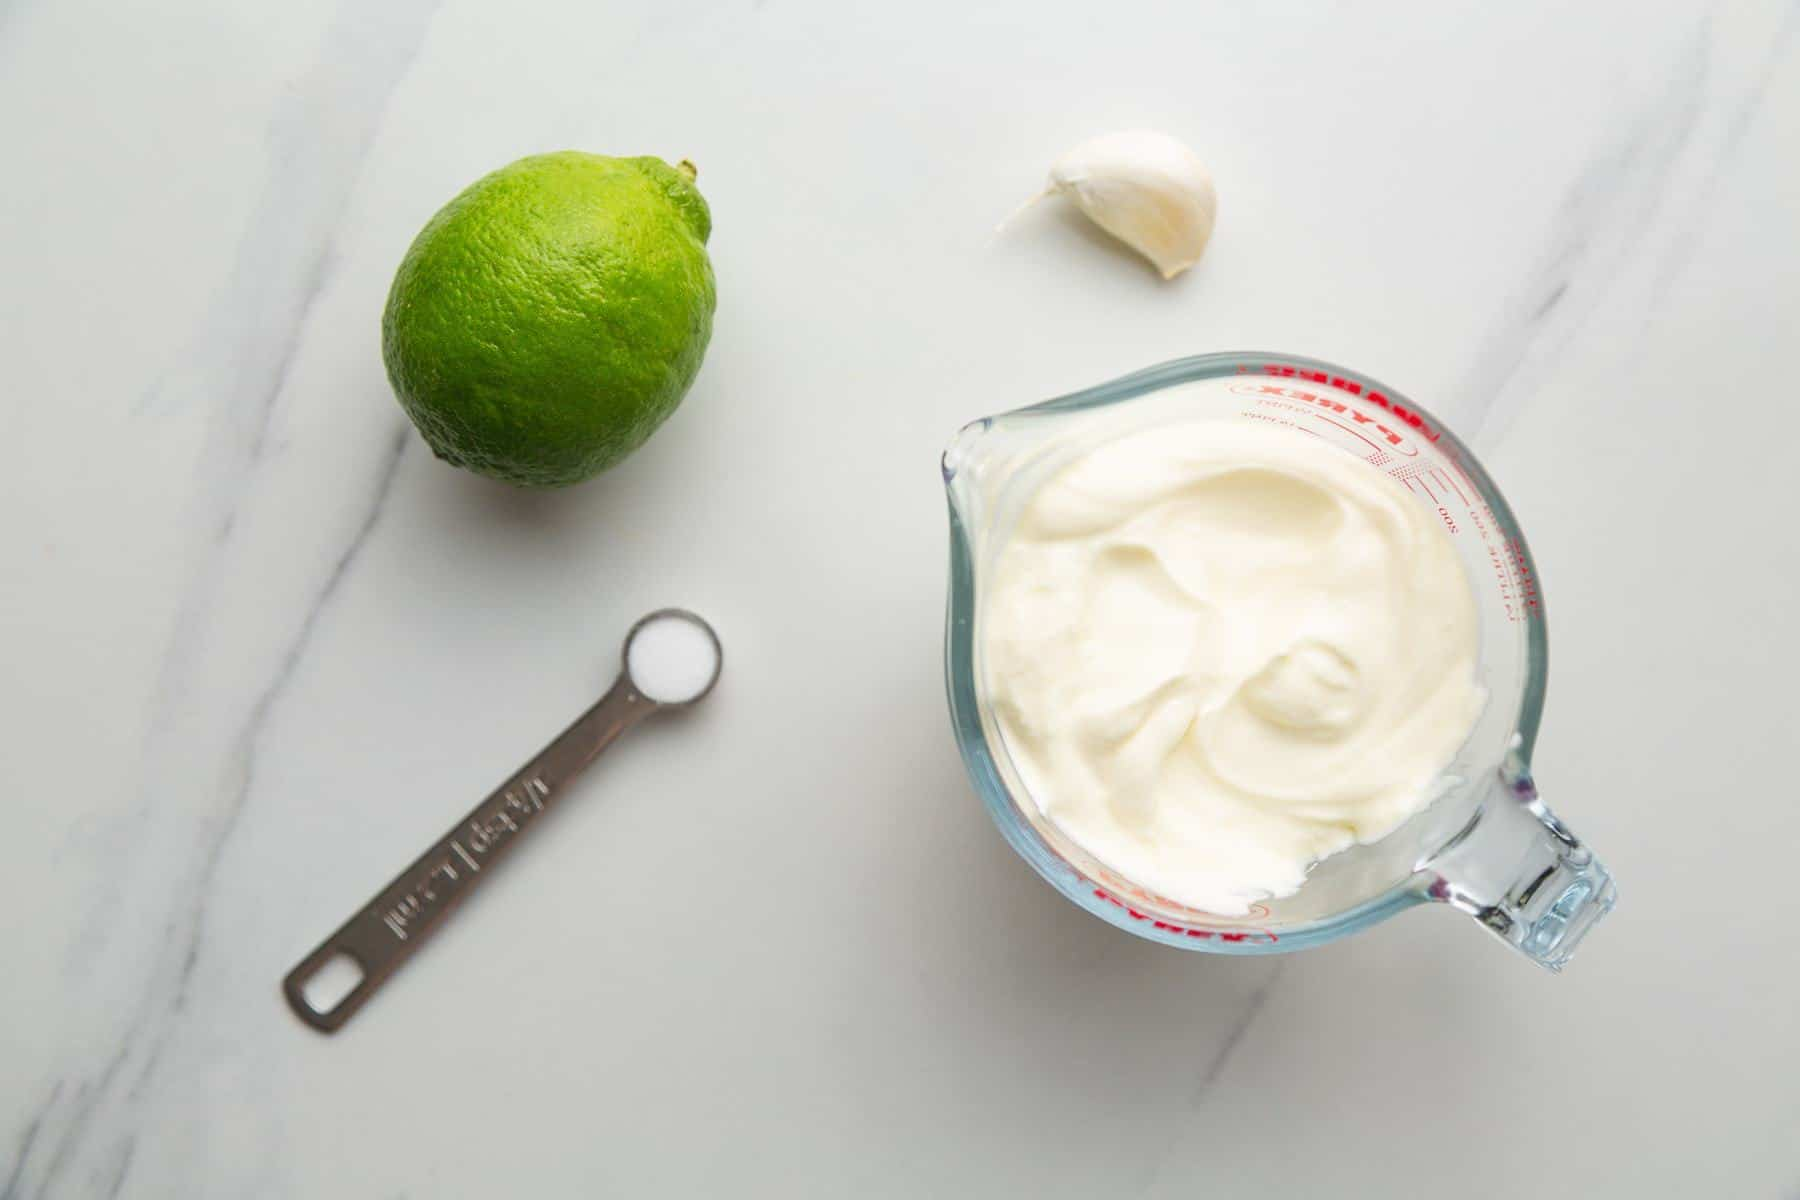 Lime Crema ingredients, sour cream, lime, garlic, and salt.